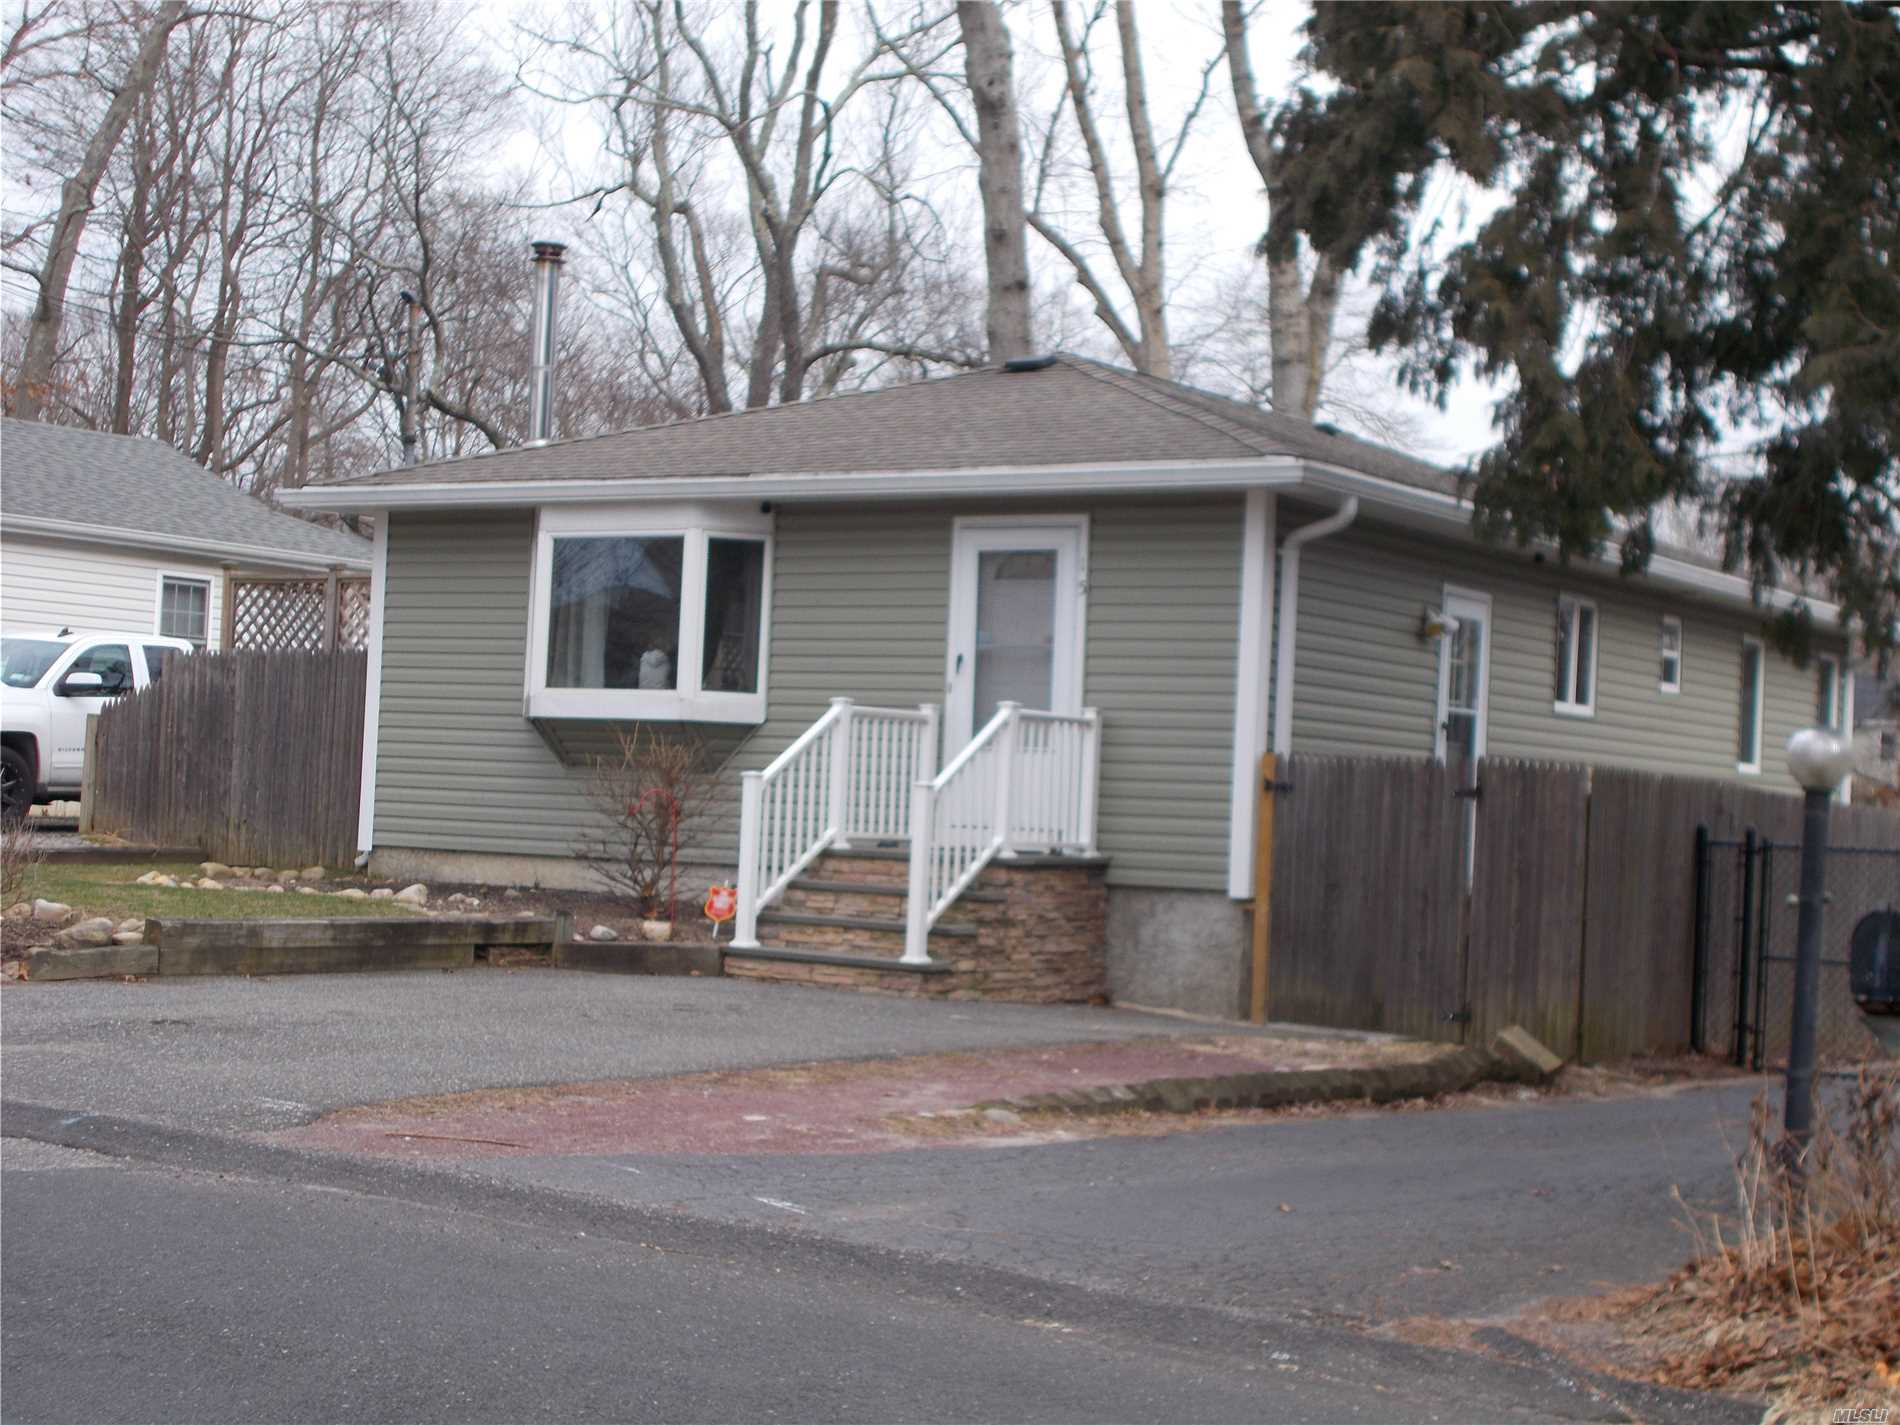 Spotless Home W/ New Roof And Siding, Large Deck W/ Hot Tub, Living Room W/ Wood Stove, New Kitchen, New Bath, Full Finished Basement W/Fbath And Ose. 200 Amp Service Just Move In